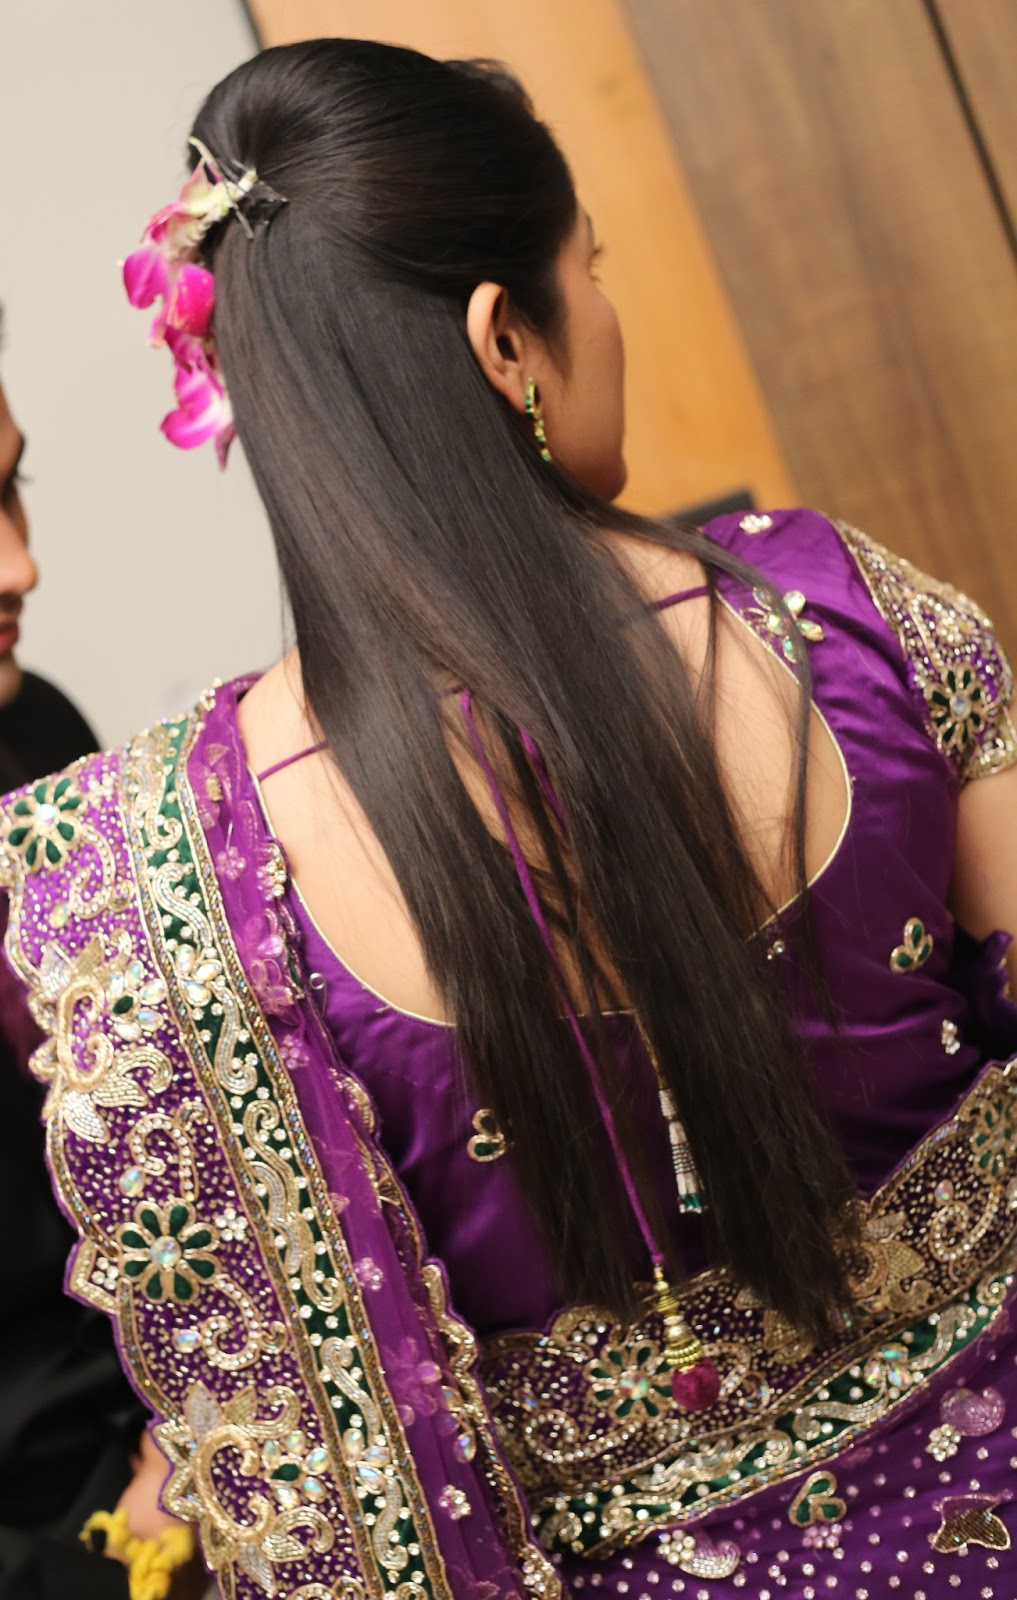 a wedding planner: latest indian bridal trends